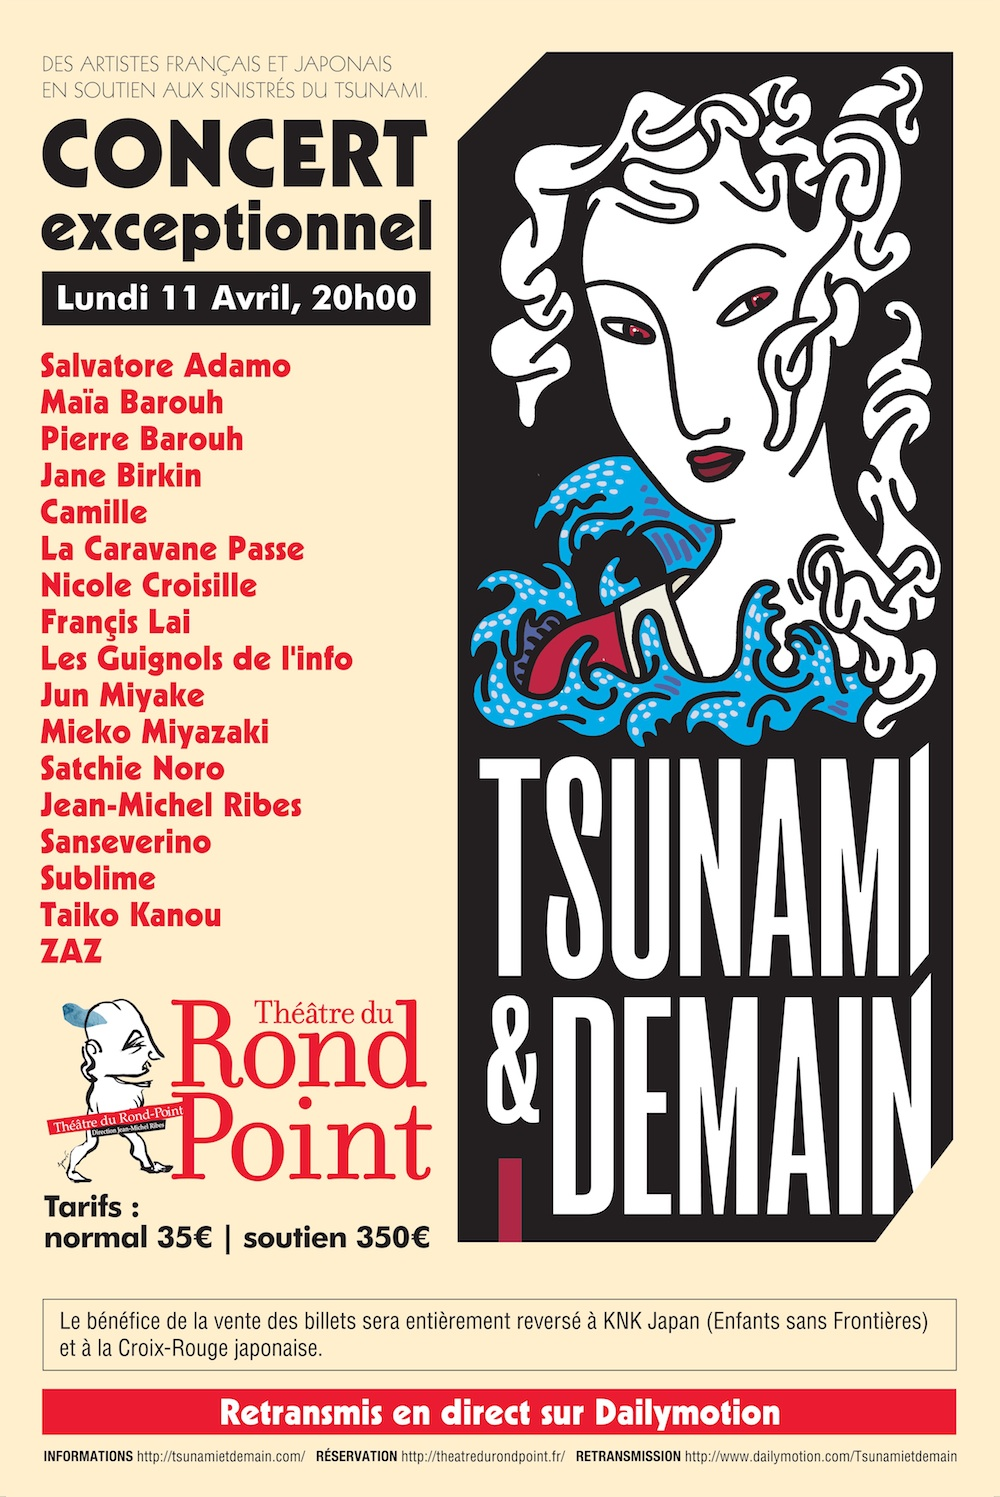 6. Concert performed at the Rond-Point Theatre, Paris, in honour of the victims of the March 11th tsunami.